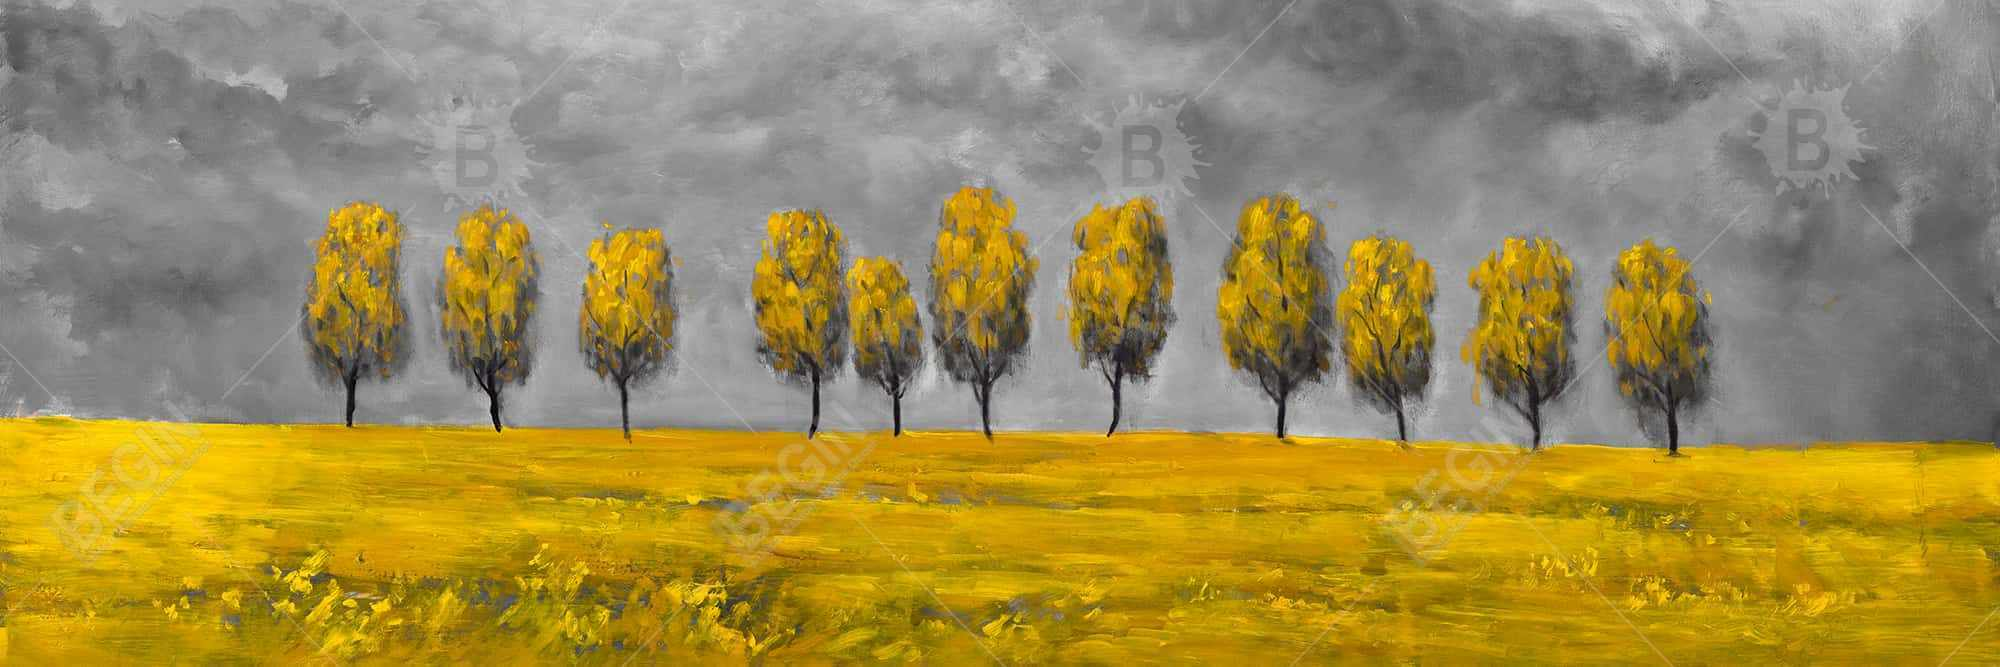 Yellow trees in a field